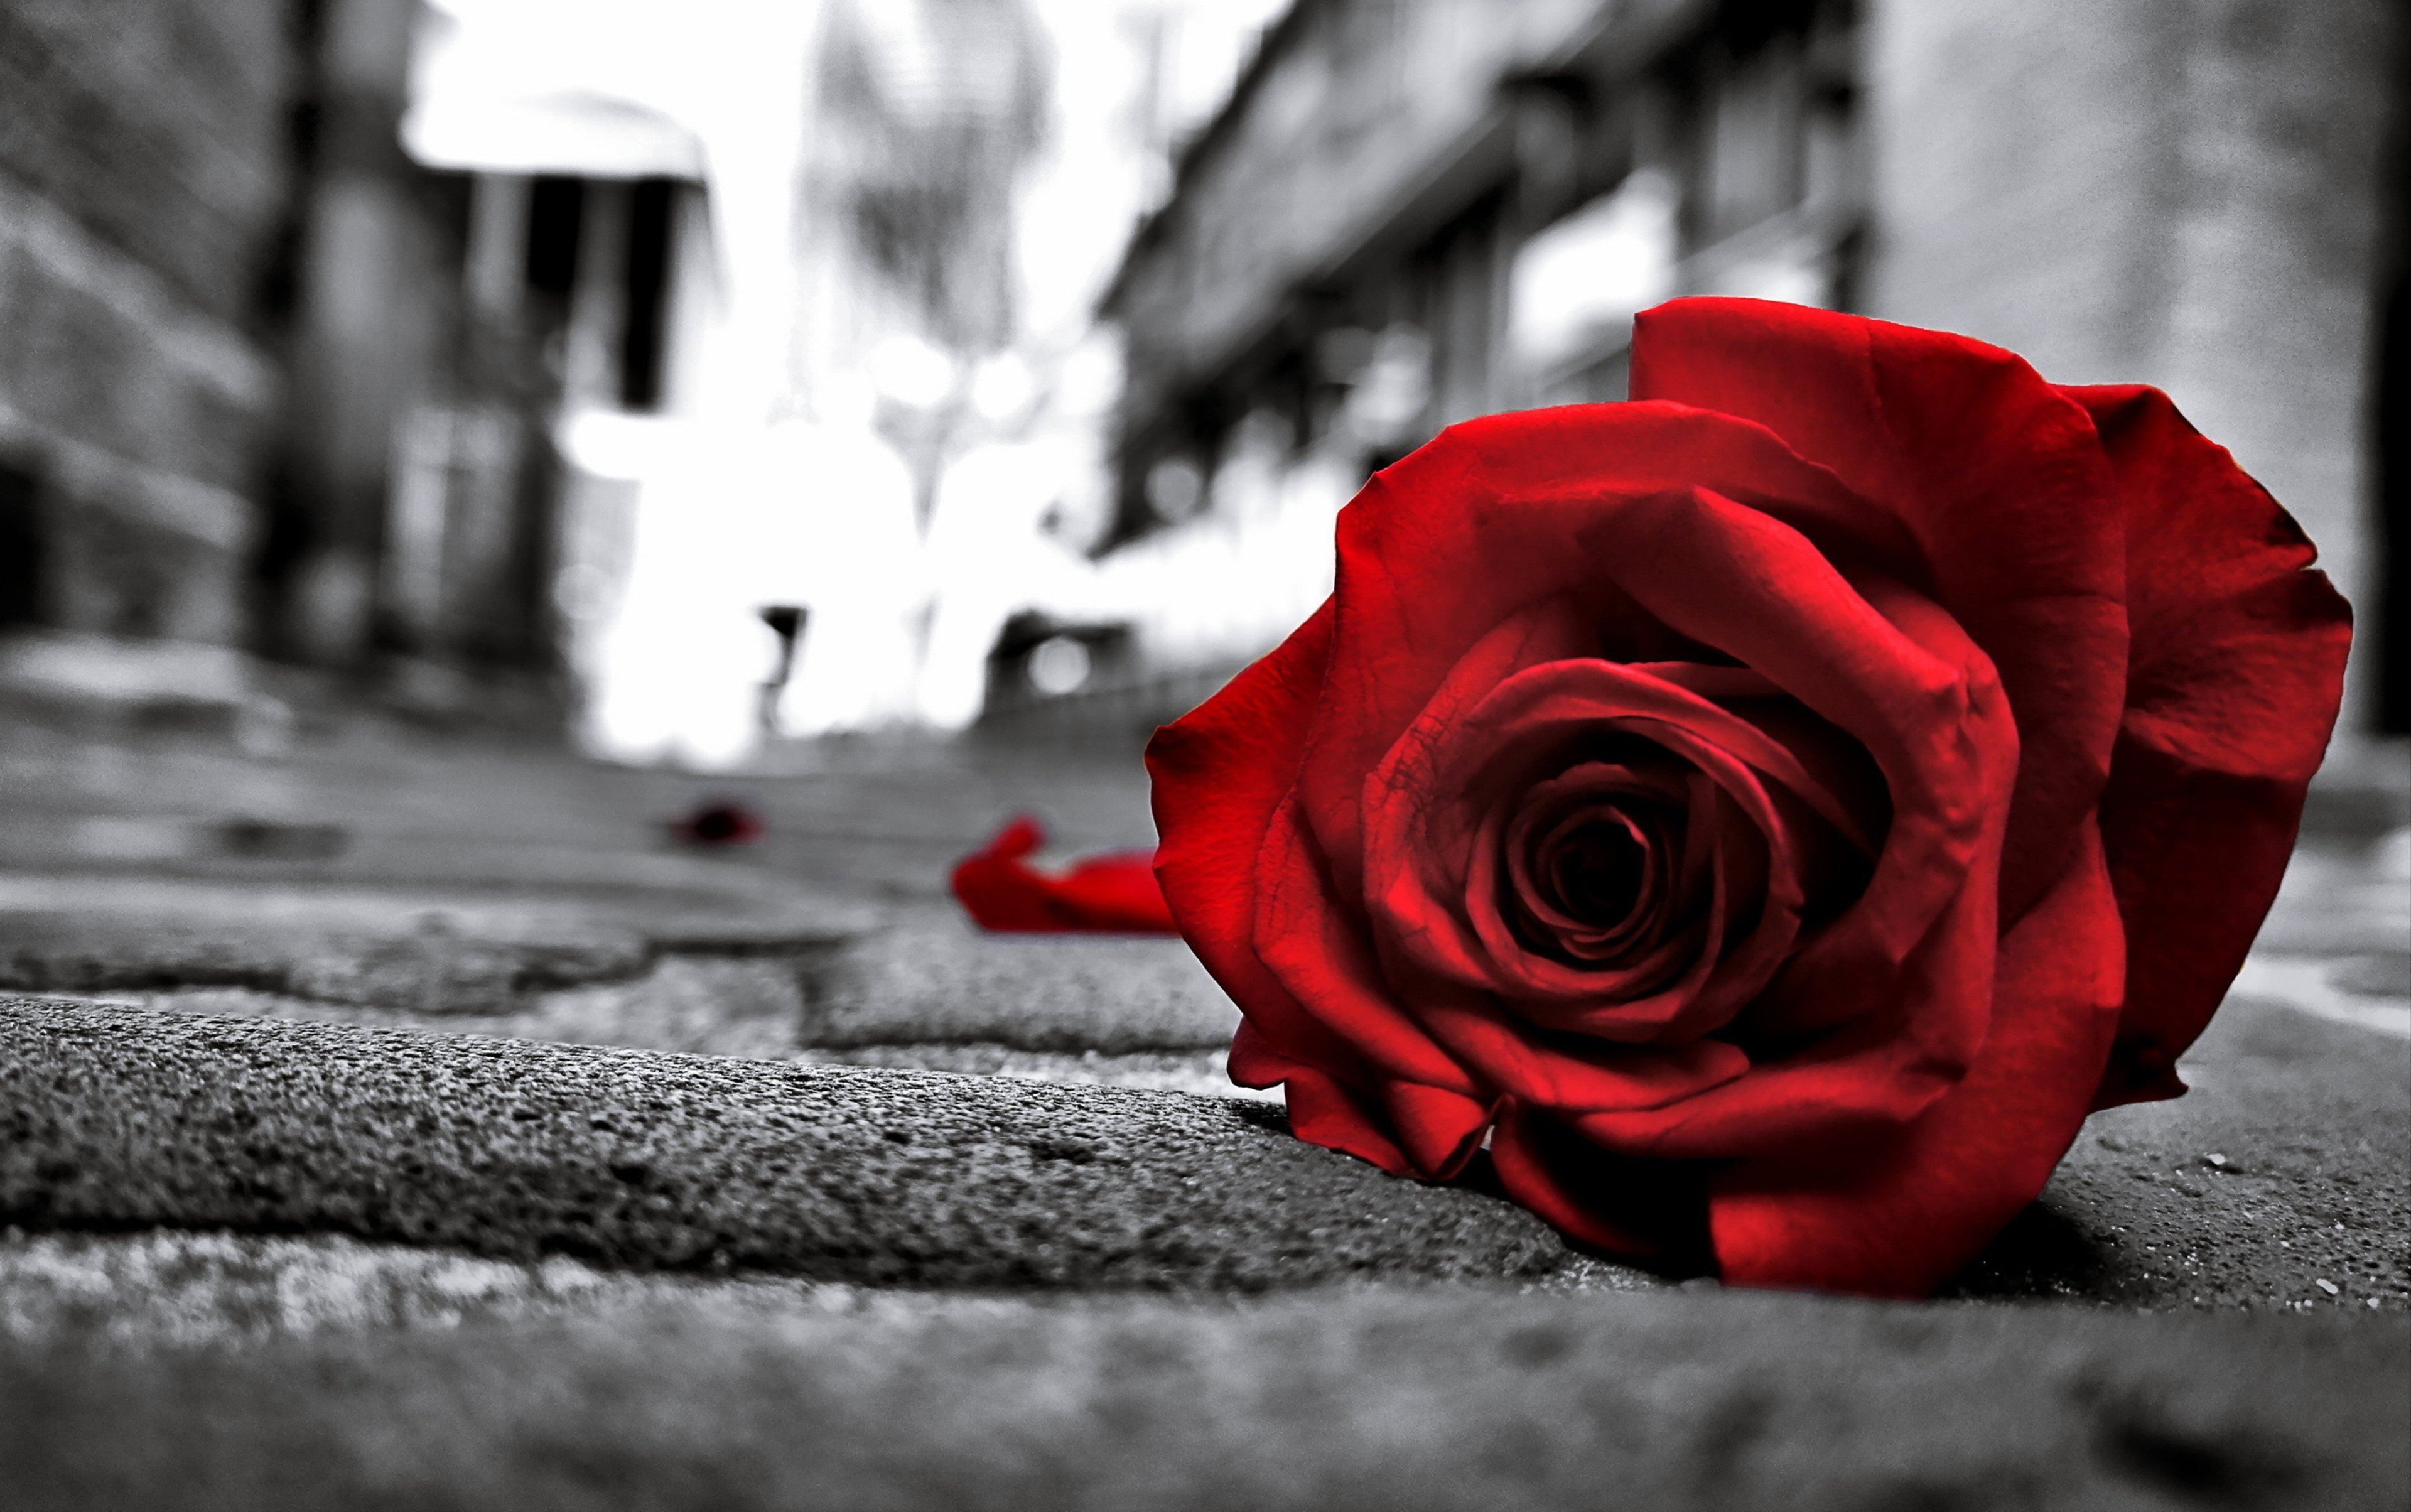 Love Emotional Wallpapers Hd : Rose sad black lost love emotions flowers life road floor ...